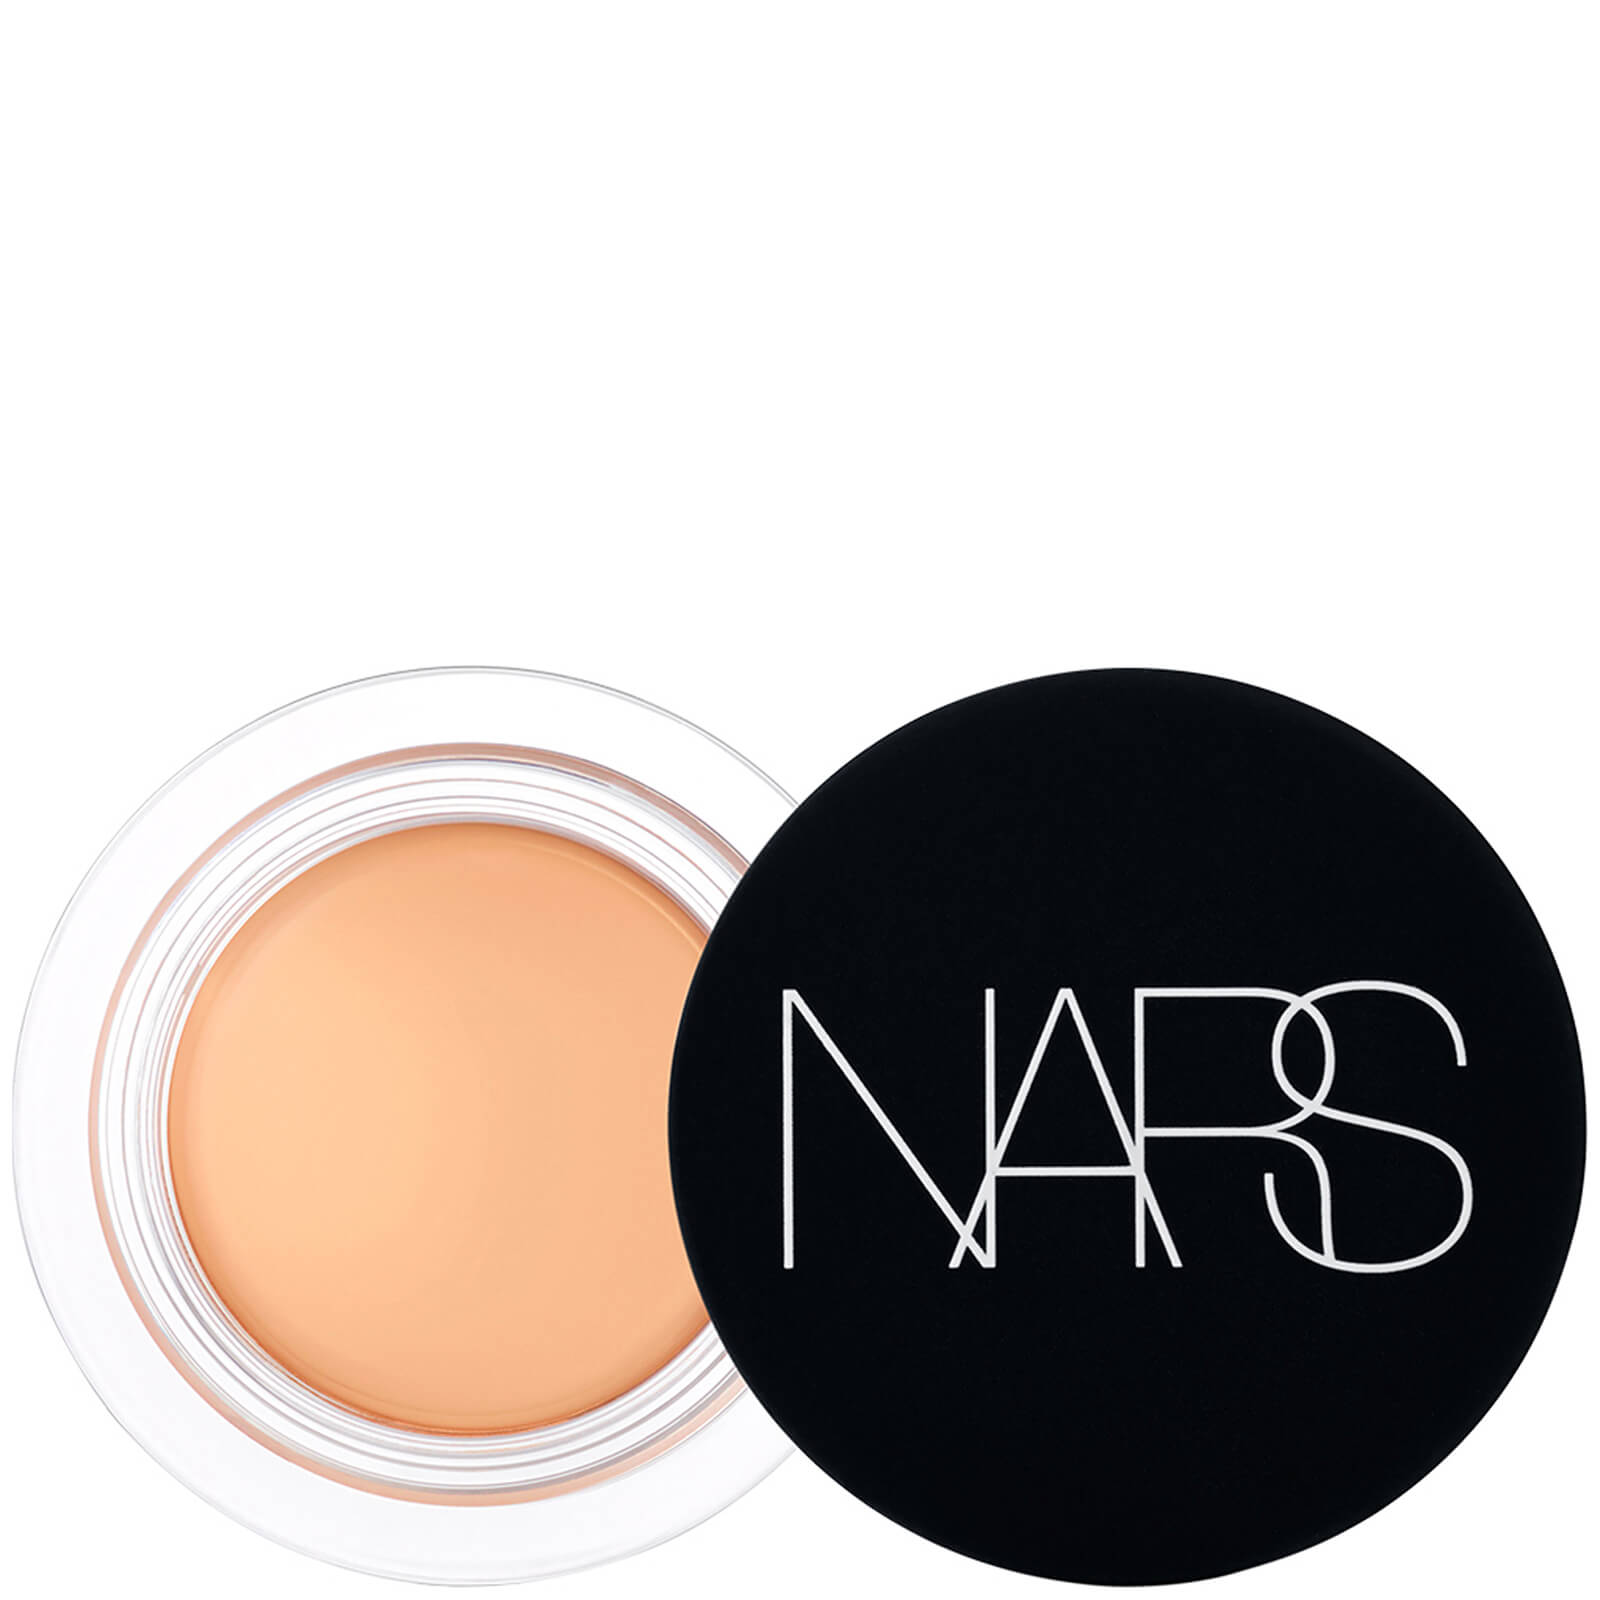 NARS Cosmetics Soft Matte Complete Concealer 5g (Various Shades) - Canelle